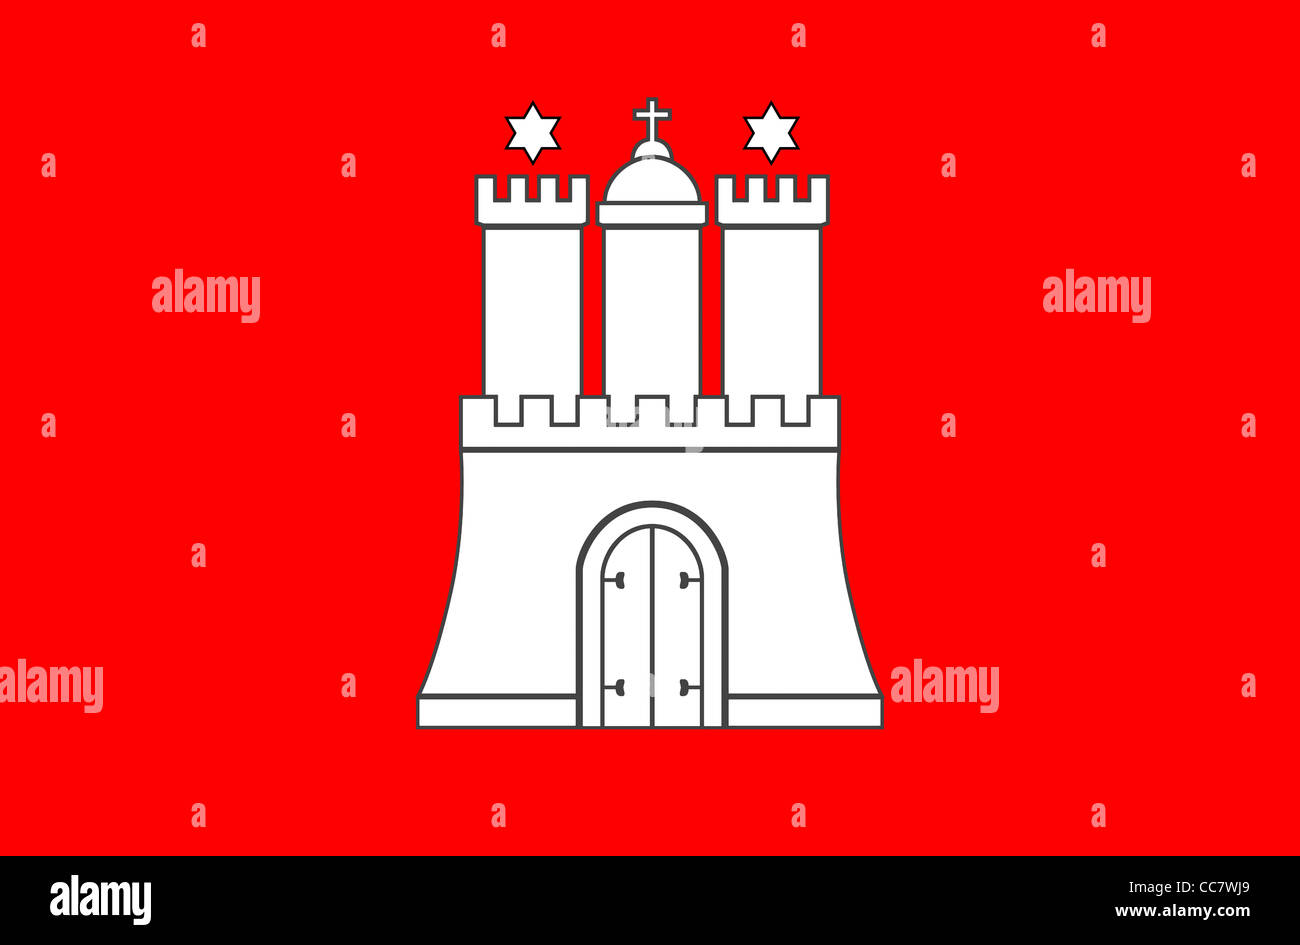 Flag of the Hanseatic town Hamburg. - Stock Image